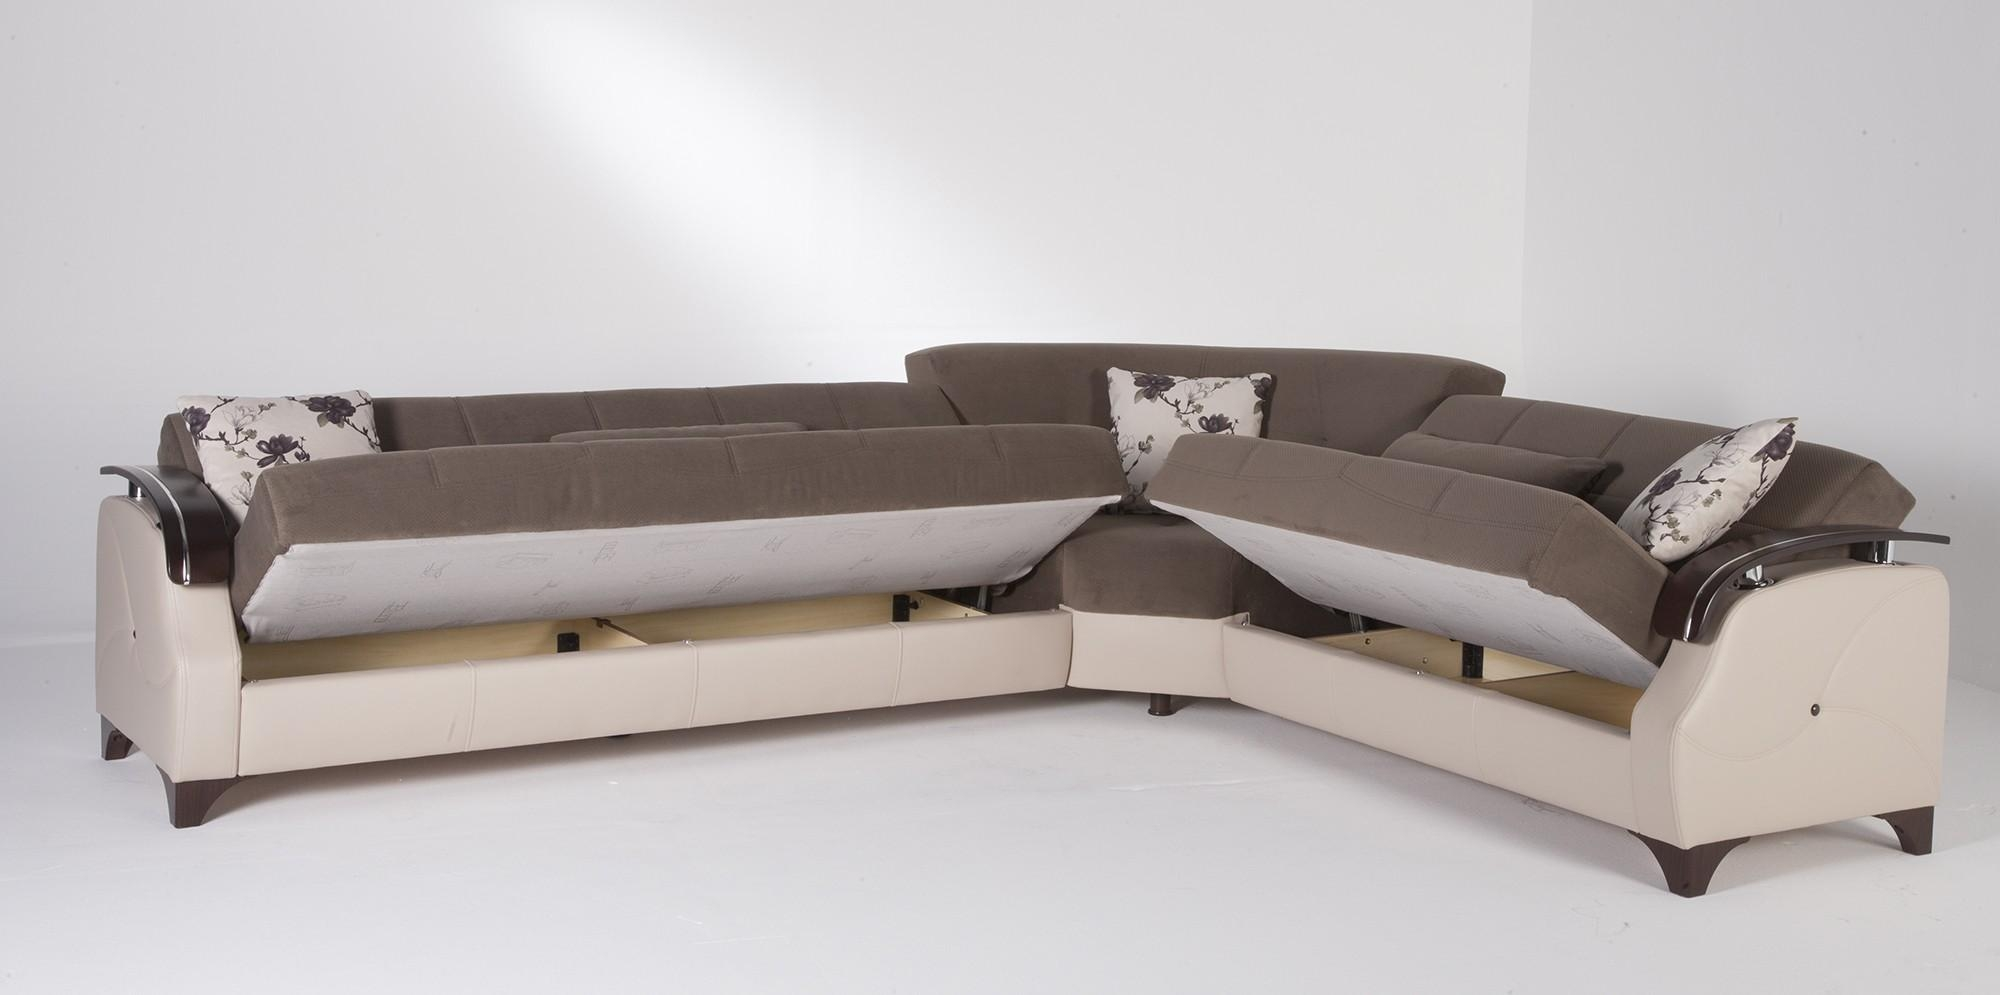 Sofas : Fabulous U Shaped Sofa Sectional Sofa Bed Affordable Intended For Sectional Sofa Beds (View 8 of 20)